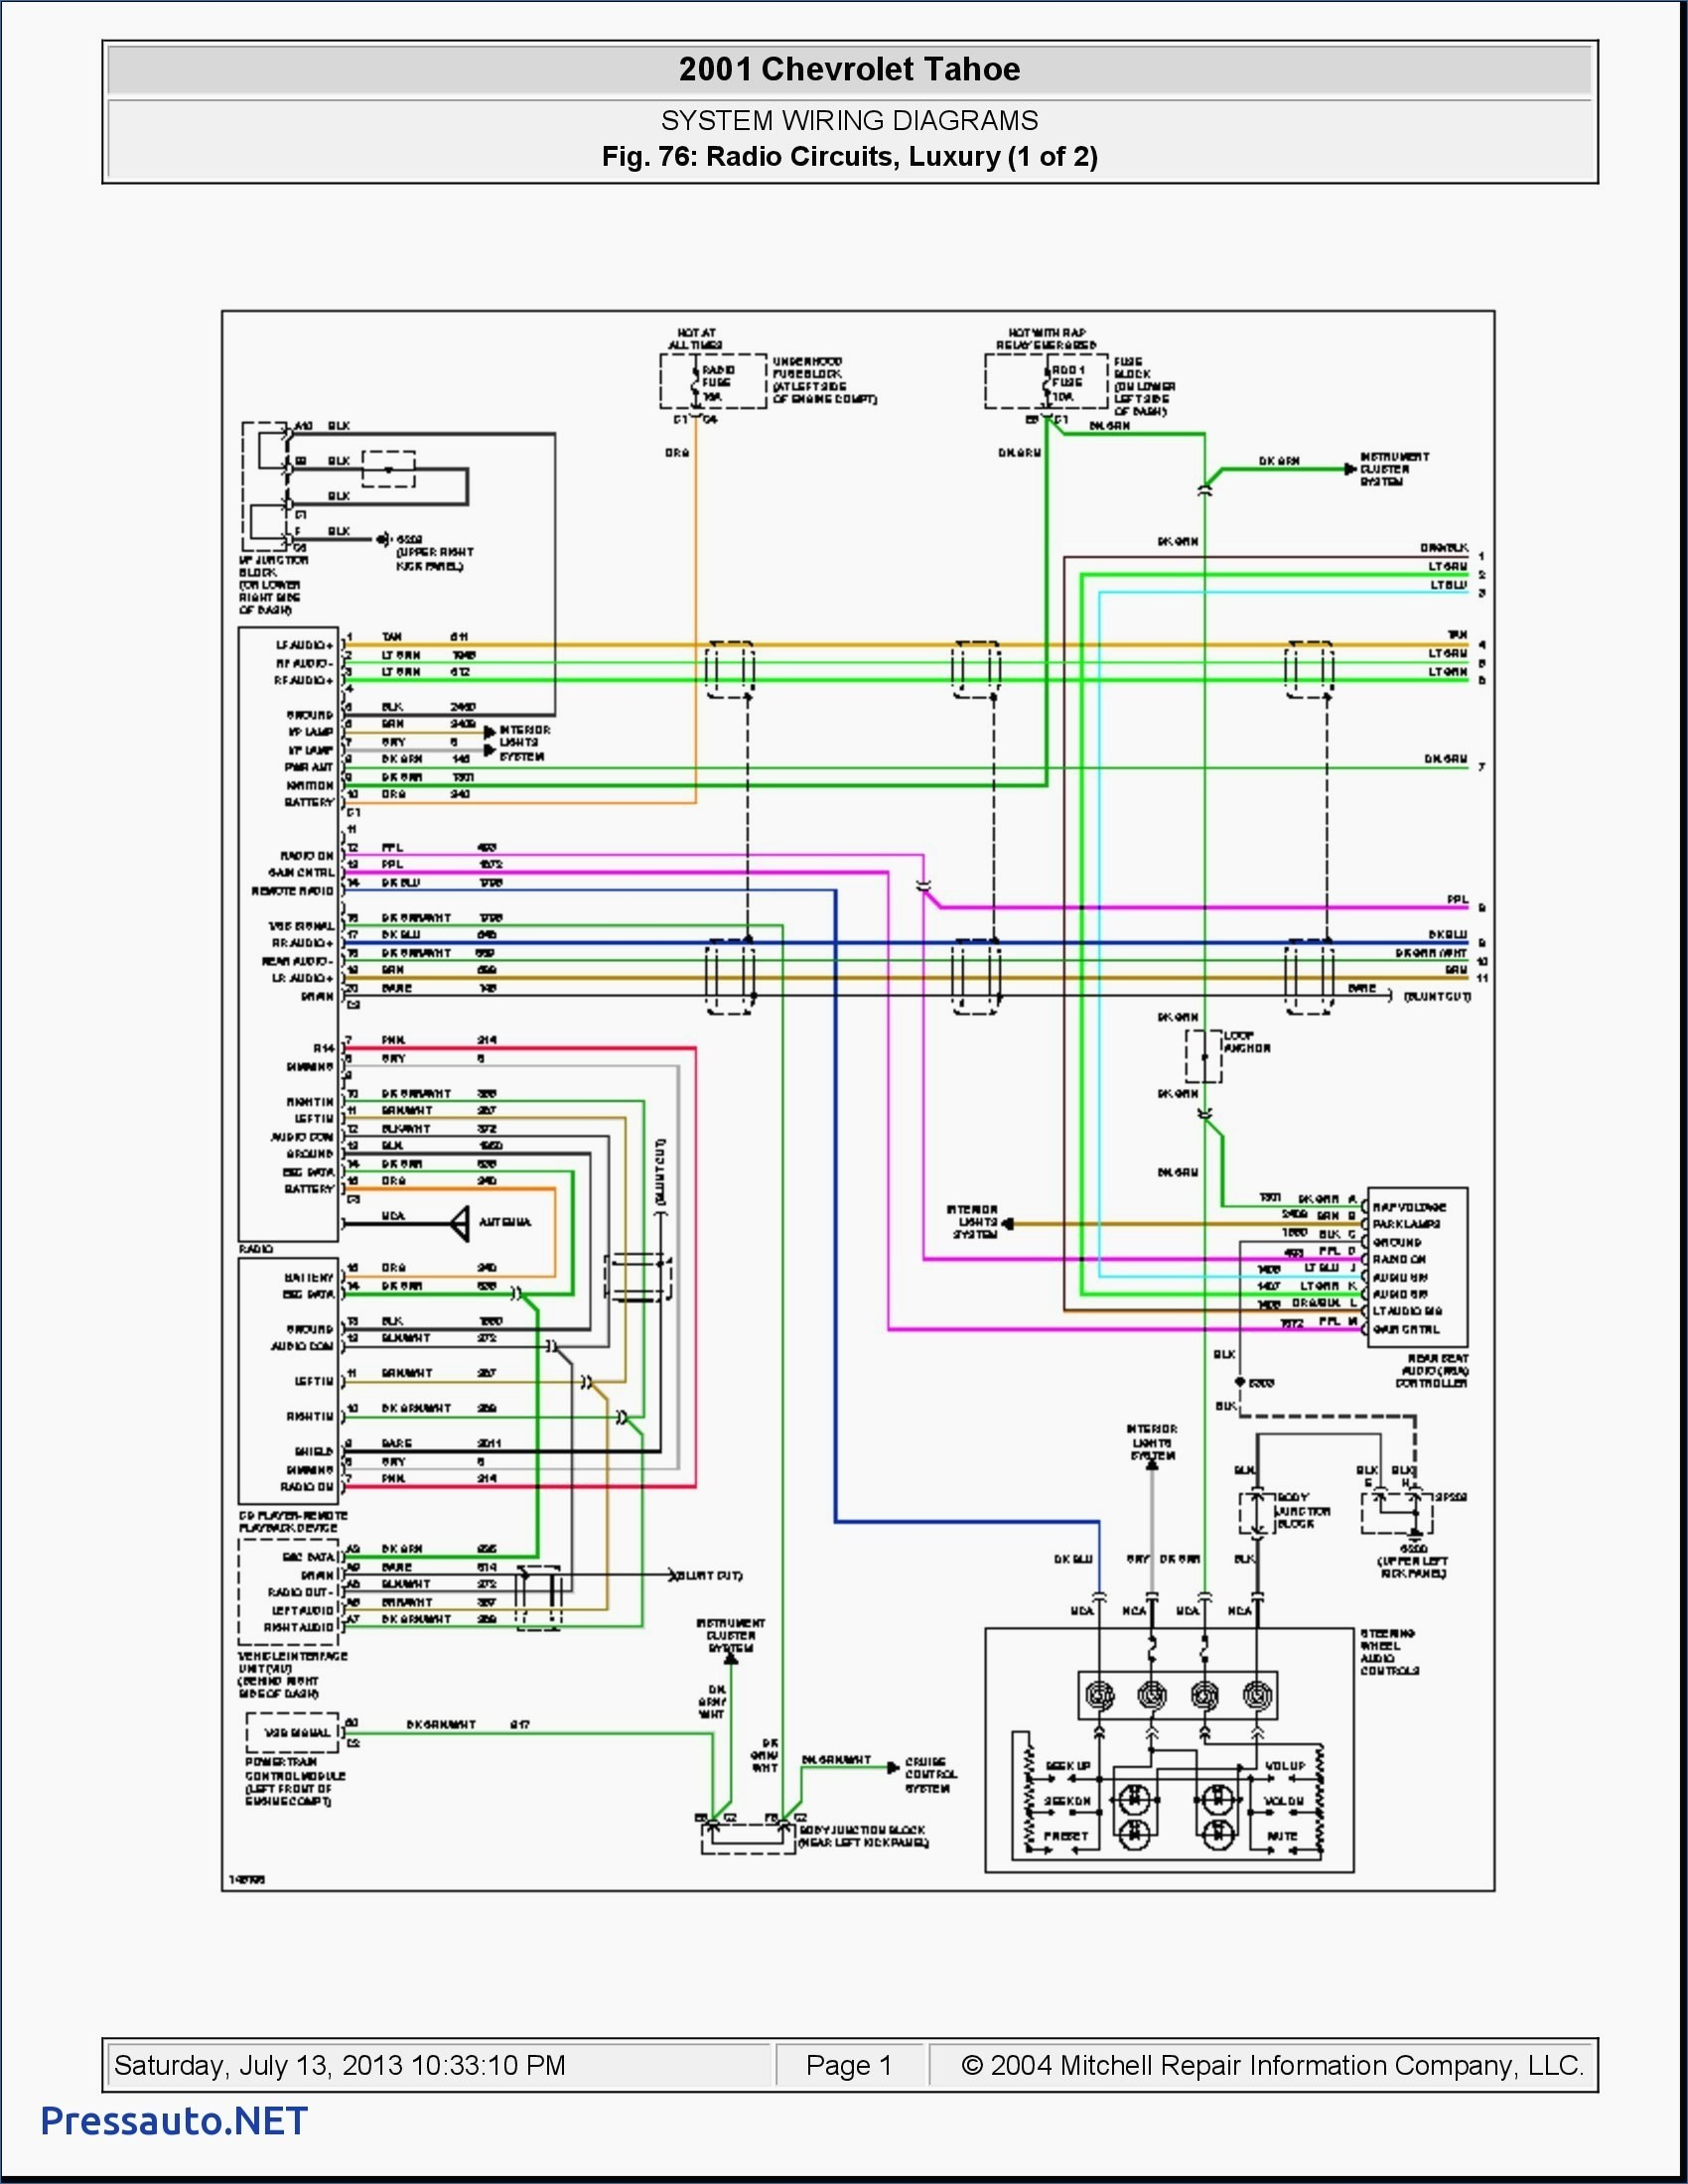 chevy sonic wiring diagram - instance wiring diagram  verse.eventimusicaema.it